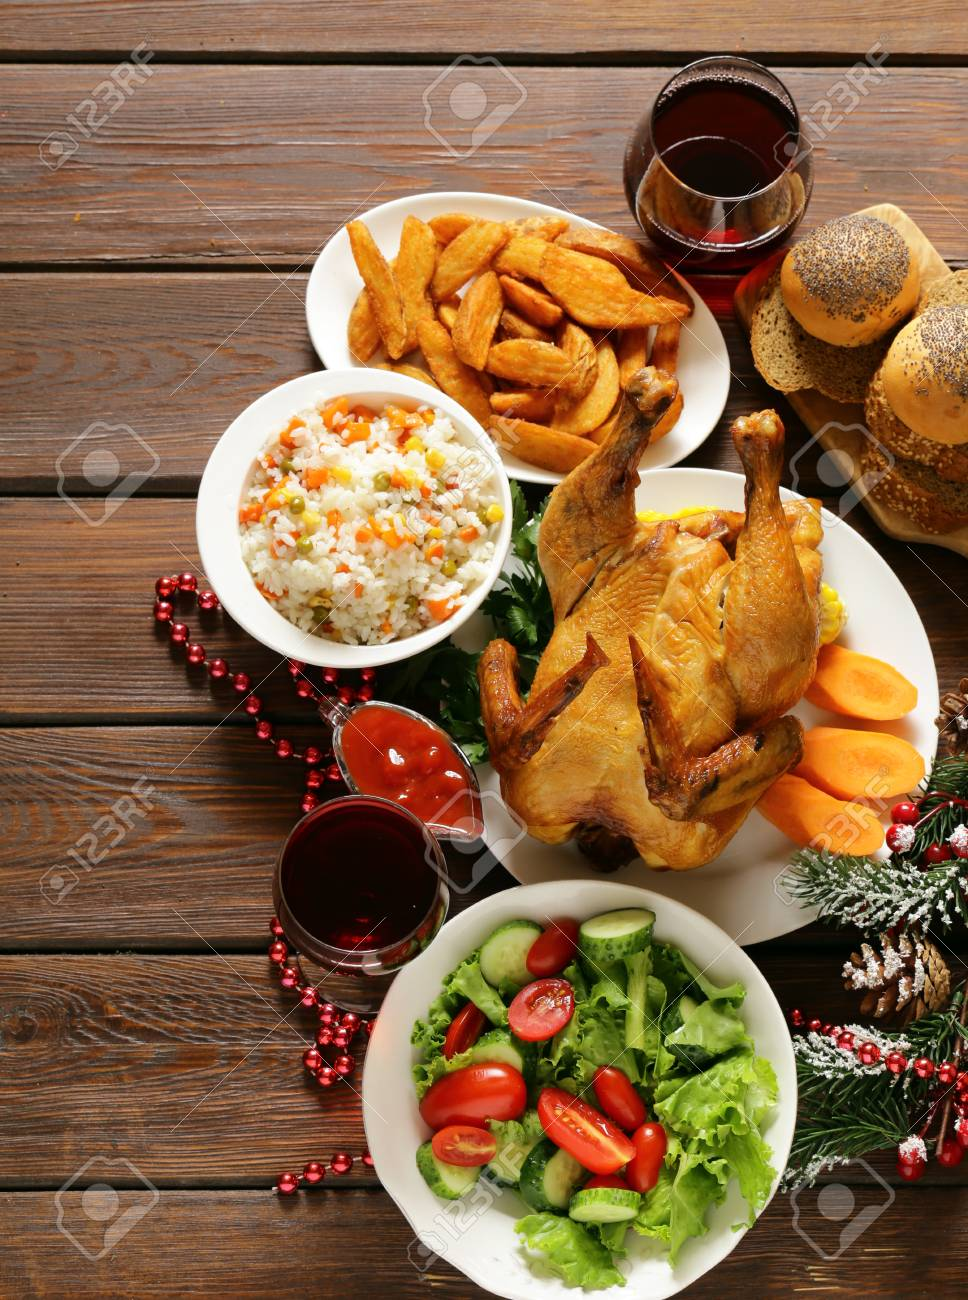 Stock Photo - traditional food for Christmas dinner festive table setting and decorations & Traditional Food For Christmas Dinner Festive Table Setting.. Stock ...